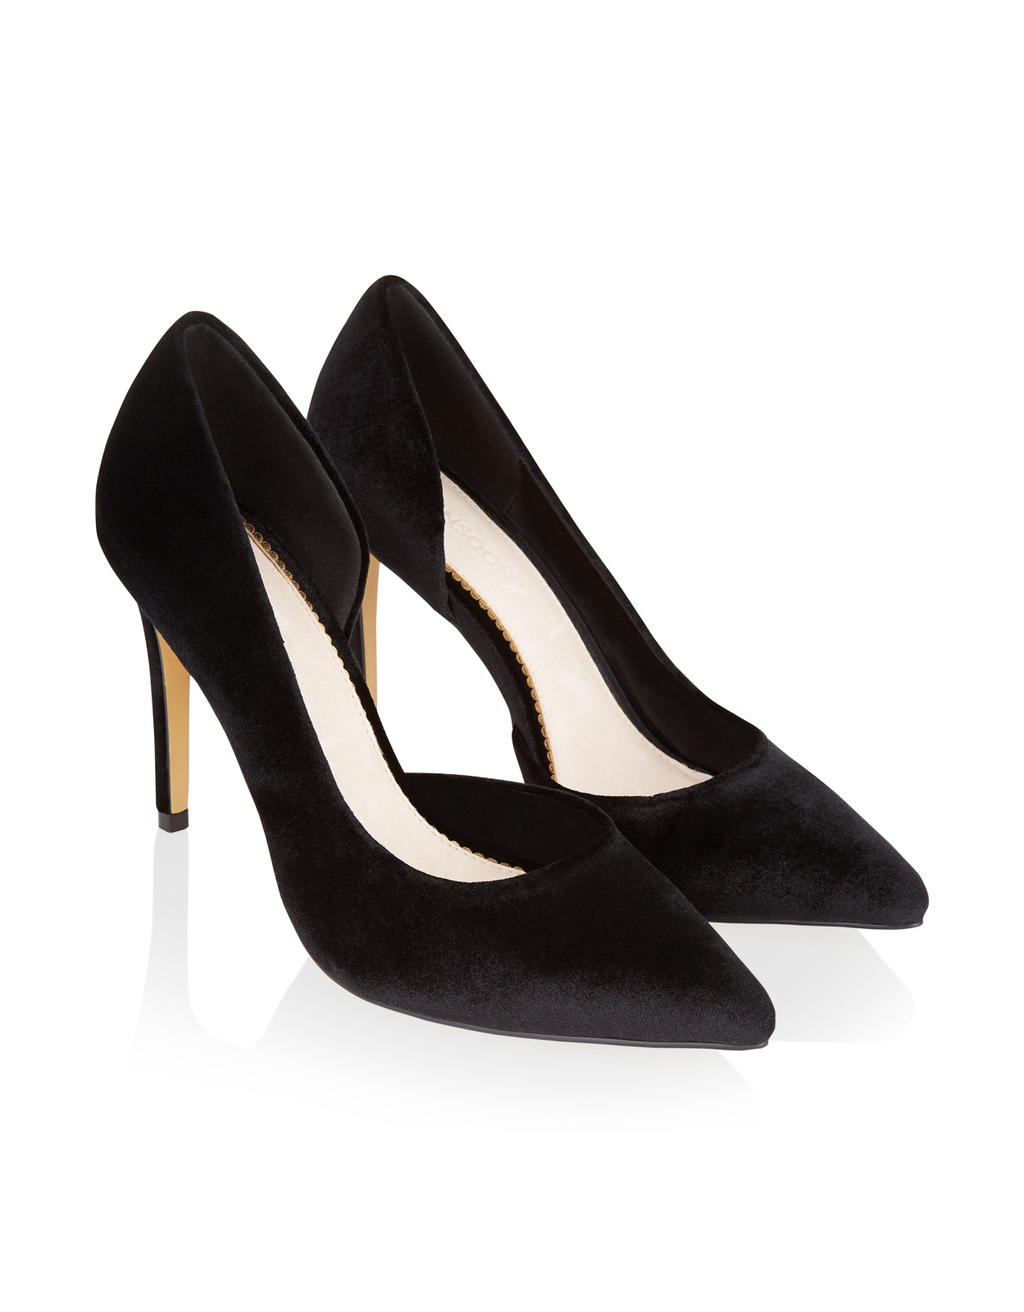 Fern Velvet Court - predominant colour: black; occasions: evening, work, occasion; material: velvet; heel height: high; heel: stiletto; toe: pointed toe; style: courts; finish: plain; pattern: plain; season: a/w 2016; wardrobe: highlight